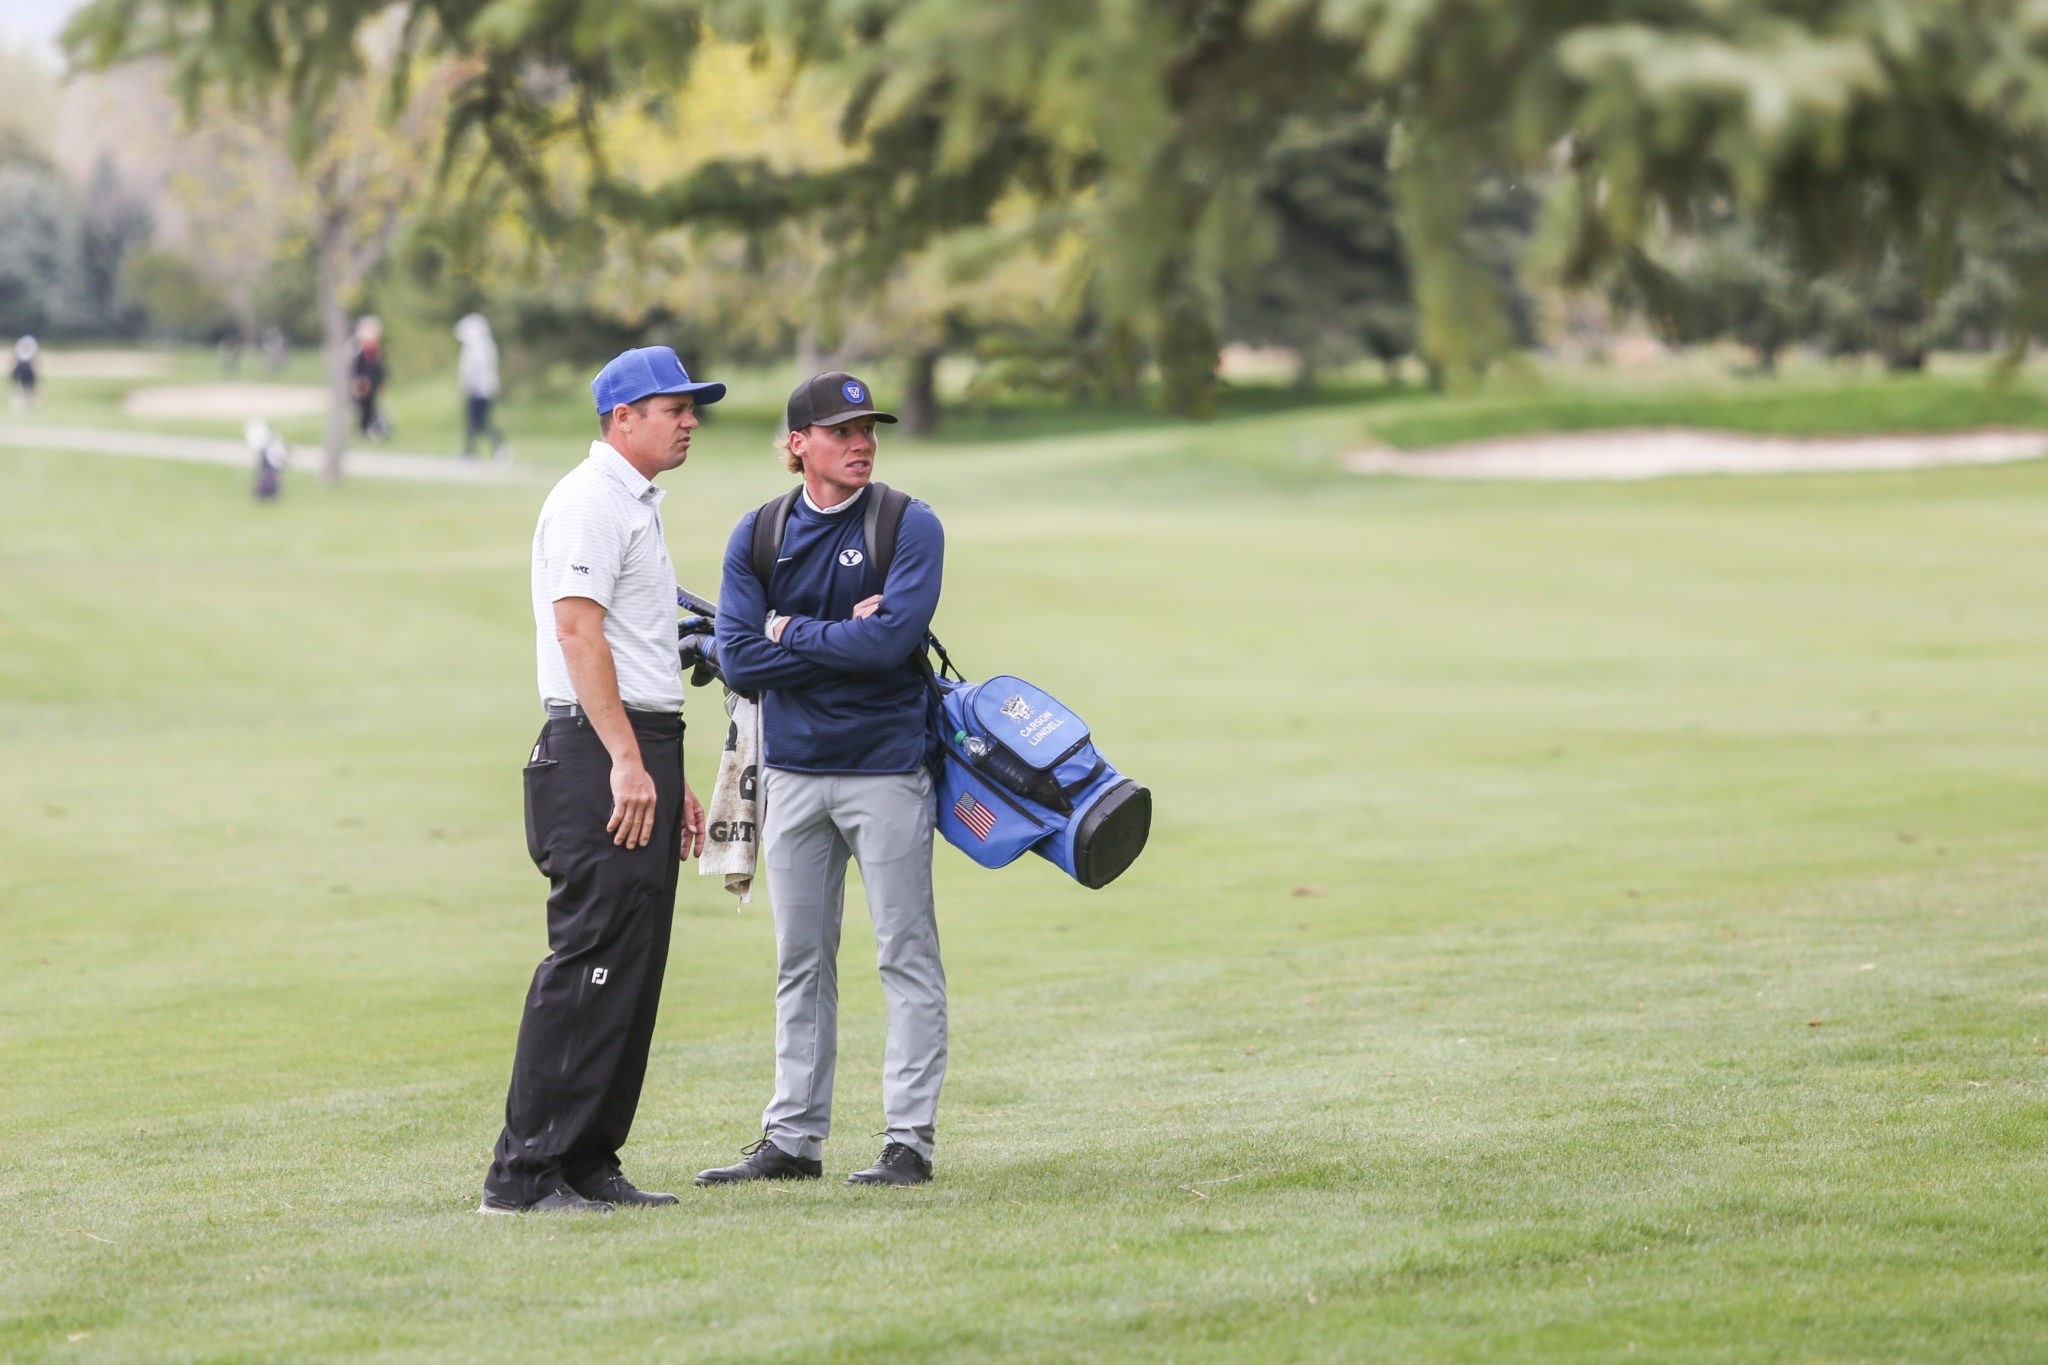 BYU men's golfer Carson Lundell ties for first at PING Cougar Classic